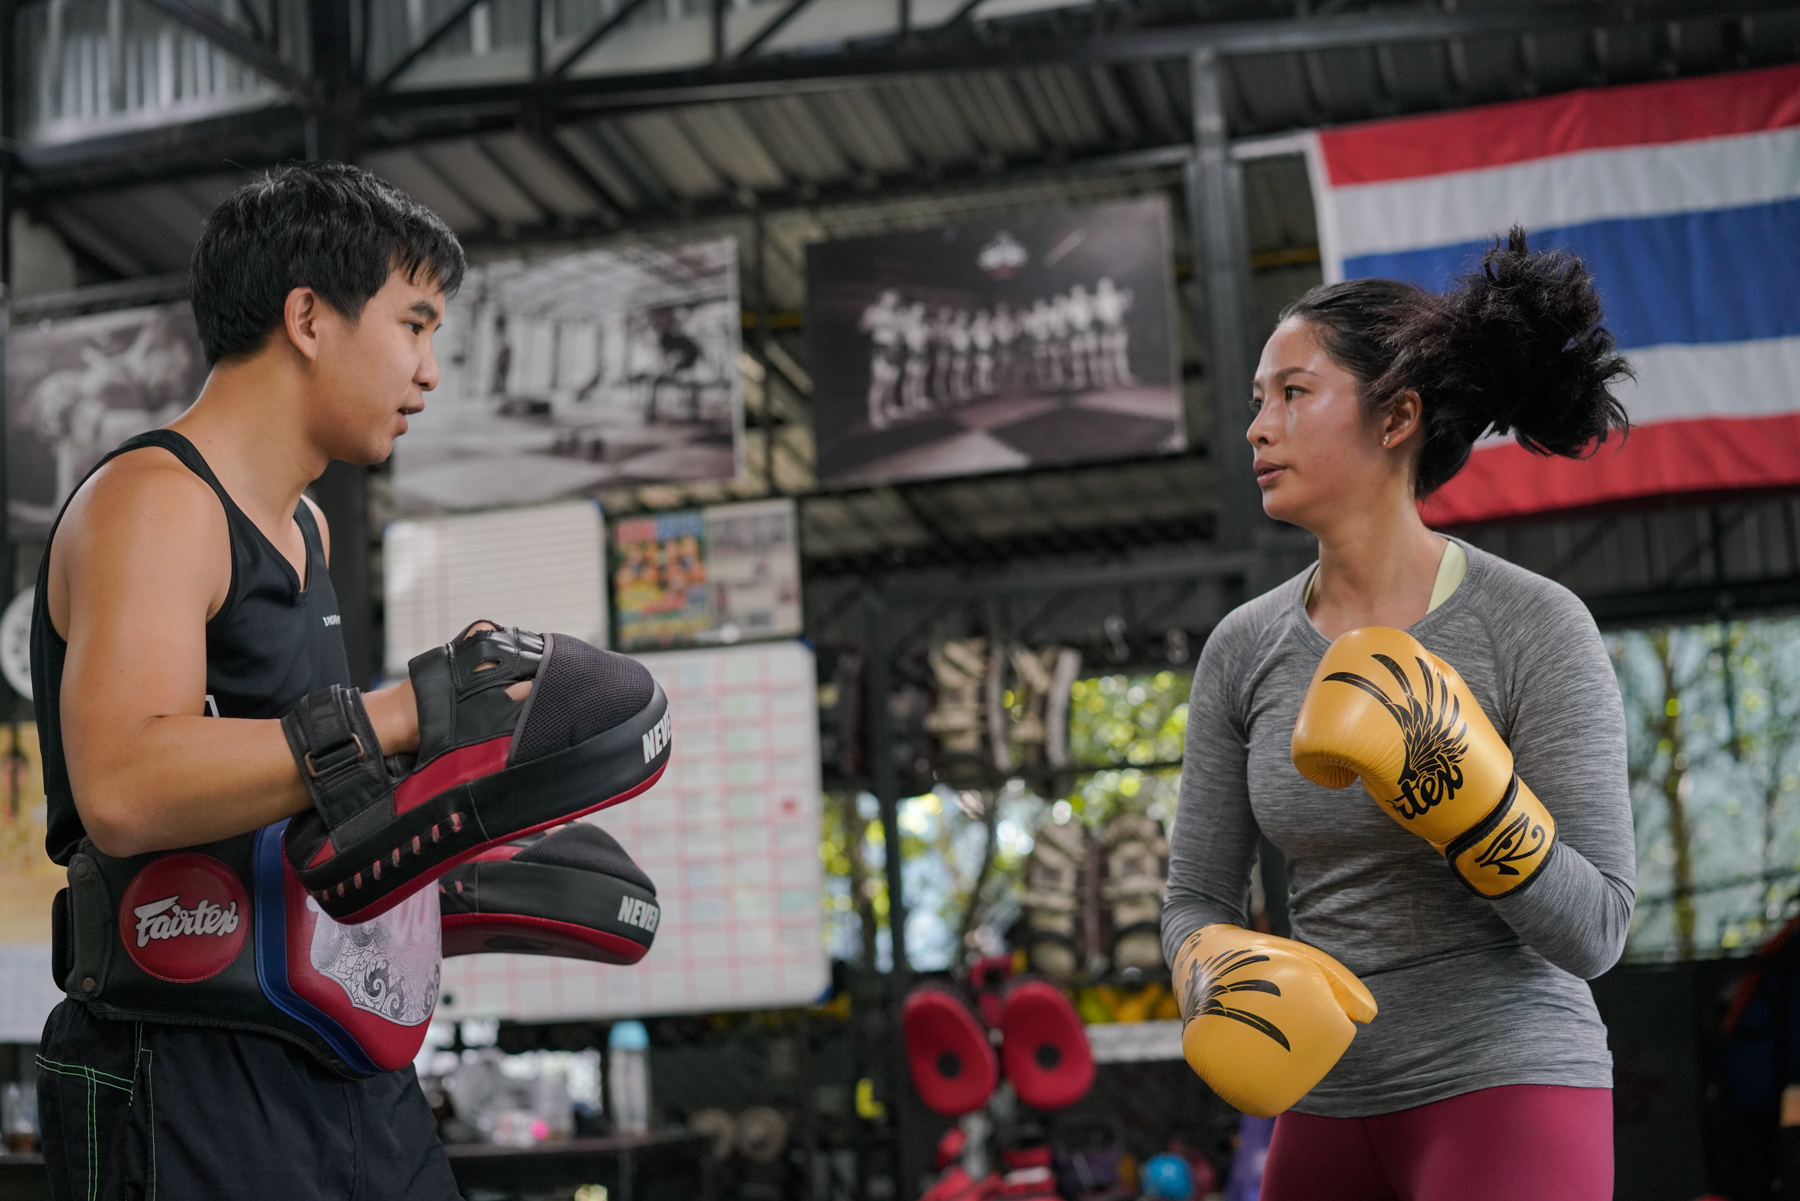 Parents who accompany their children to study in Thailand can receive a non-immigrant visa, which does not allow them to work, so 33-year-old Ding has a lot of spare time. She practices Thai boxing twice a week to stay motivated, after leaving her job as a yoga teacher in China.